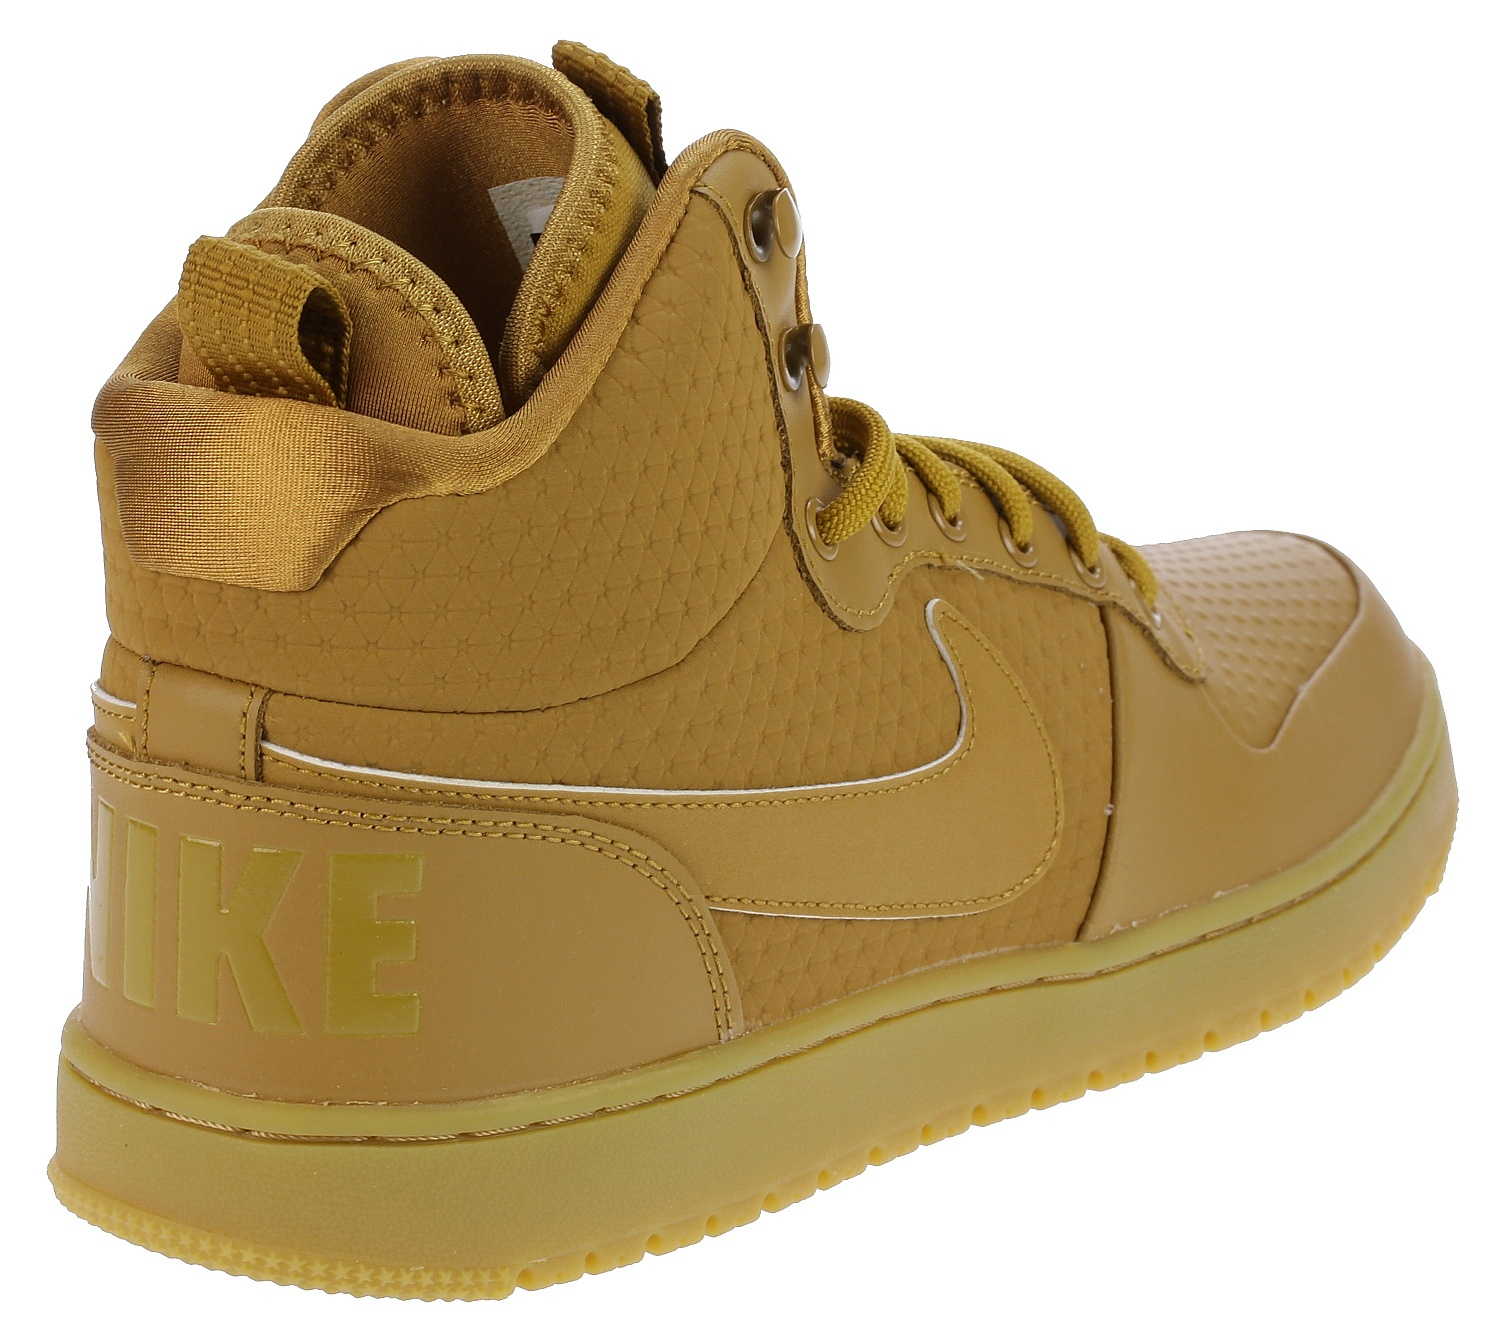 ... topánky Nike Court Borough Mid Winter - Wheat Wheat Black Gum Light  Brown ... 1644dde1964